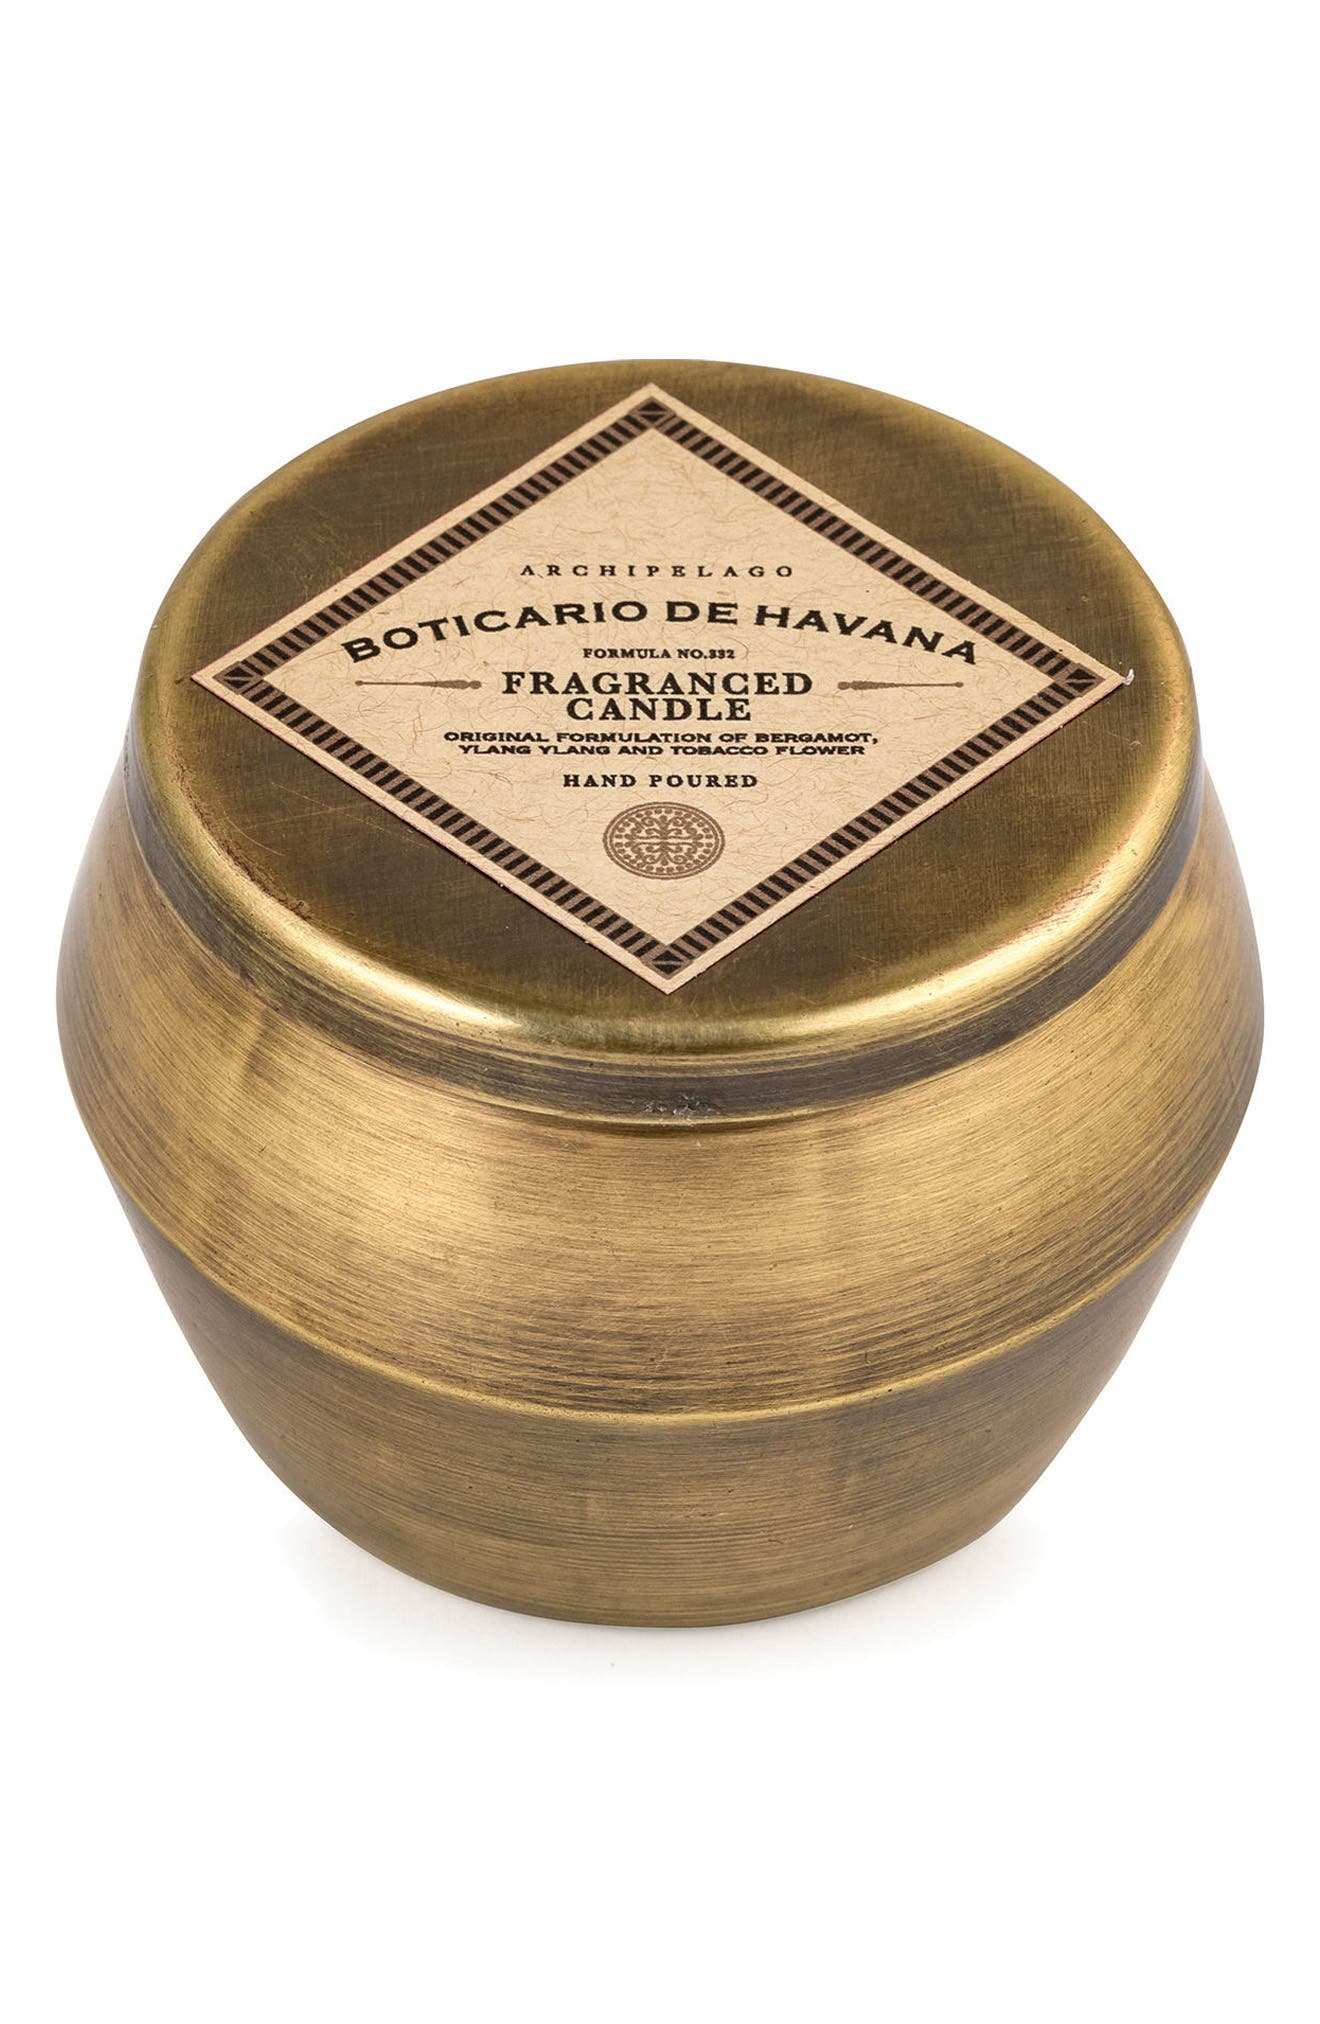 Alternate Image 1 Selected - Archipelago Botanicals Botanico de Havana Scented Tin Candle